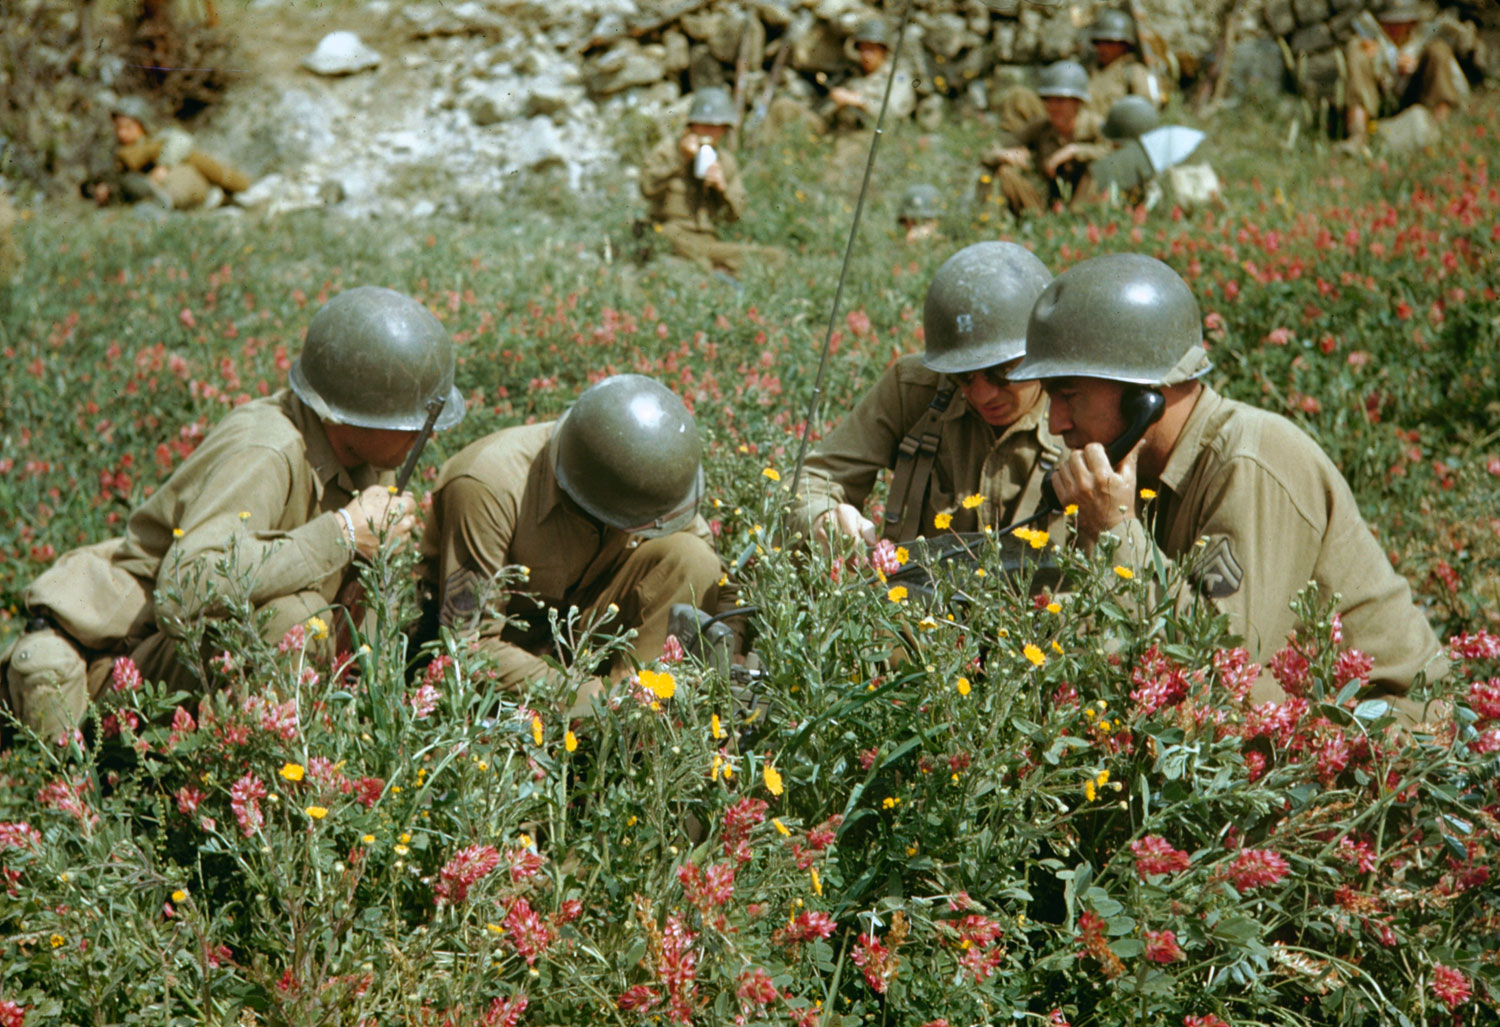 Not published in LIFE. Liri Valley, on the road to Rome, 1944.